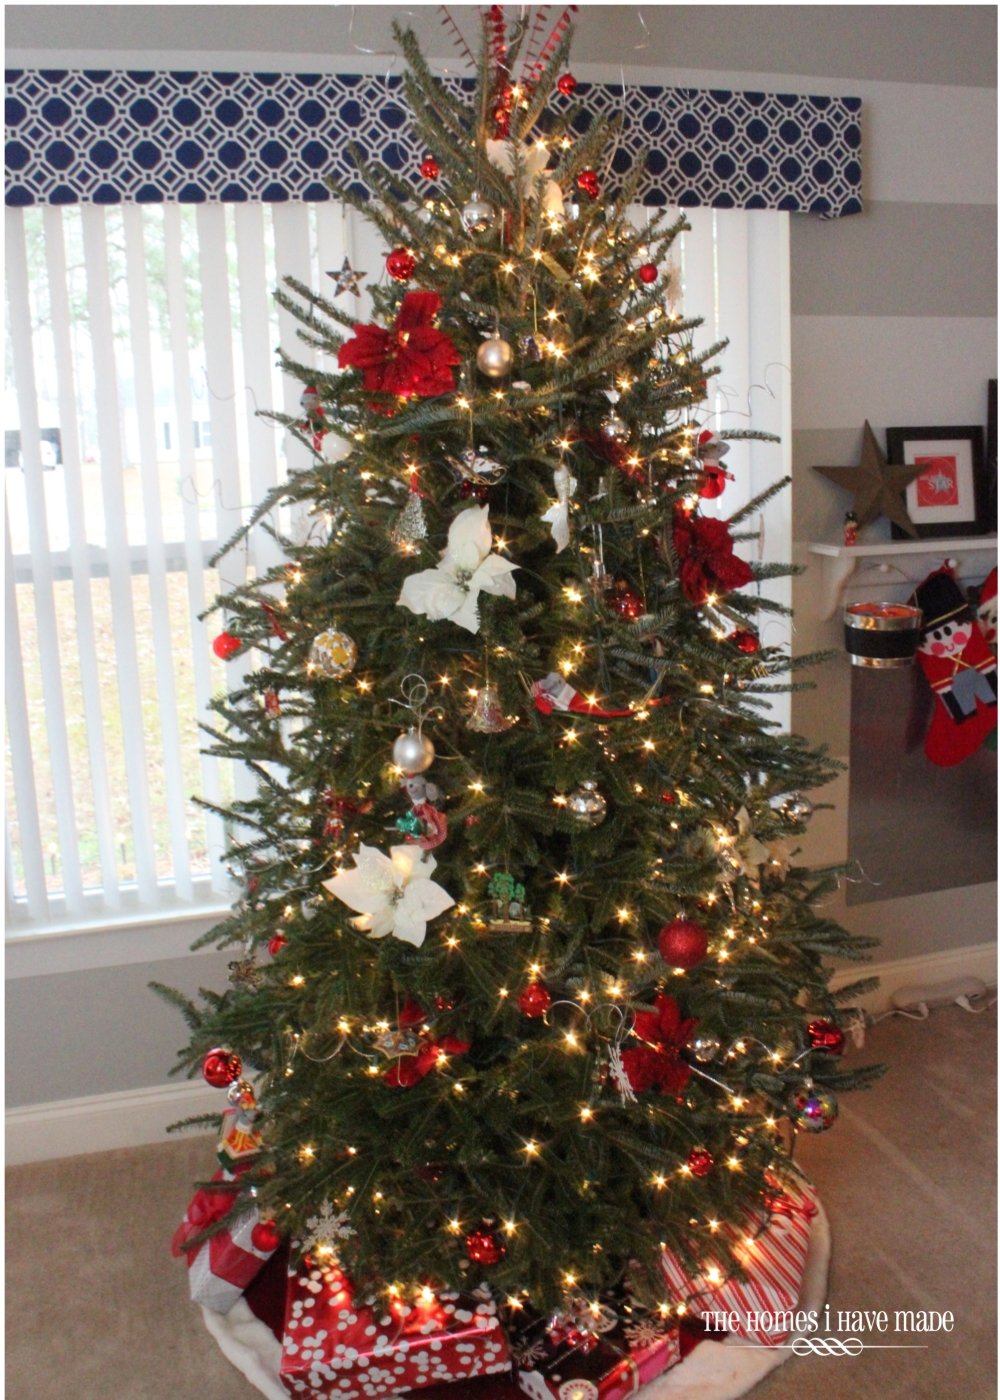 Red and silver decorated christmas tree - Our Tree Was Decorated In Shades Of Red White And Silver To Go With The Holiday Decor In The Entryway Behind It We Started By Putting Every Red